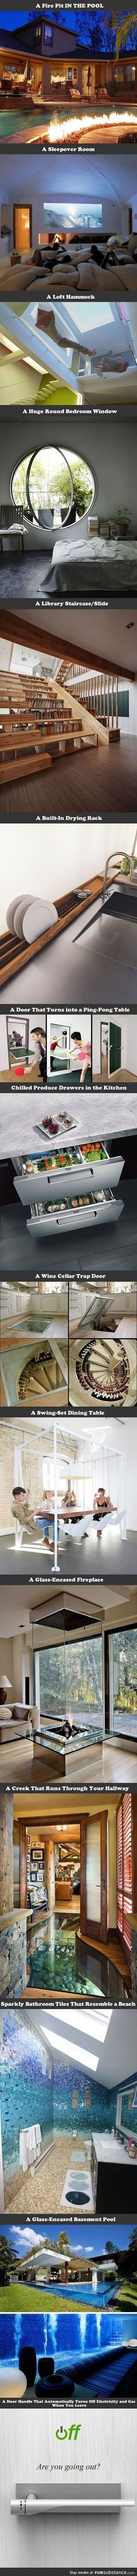 OMG, some of those ideas are brilliantly practical space-savers! Others are just fantastically awesome...